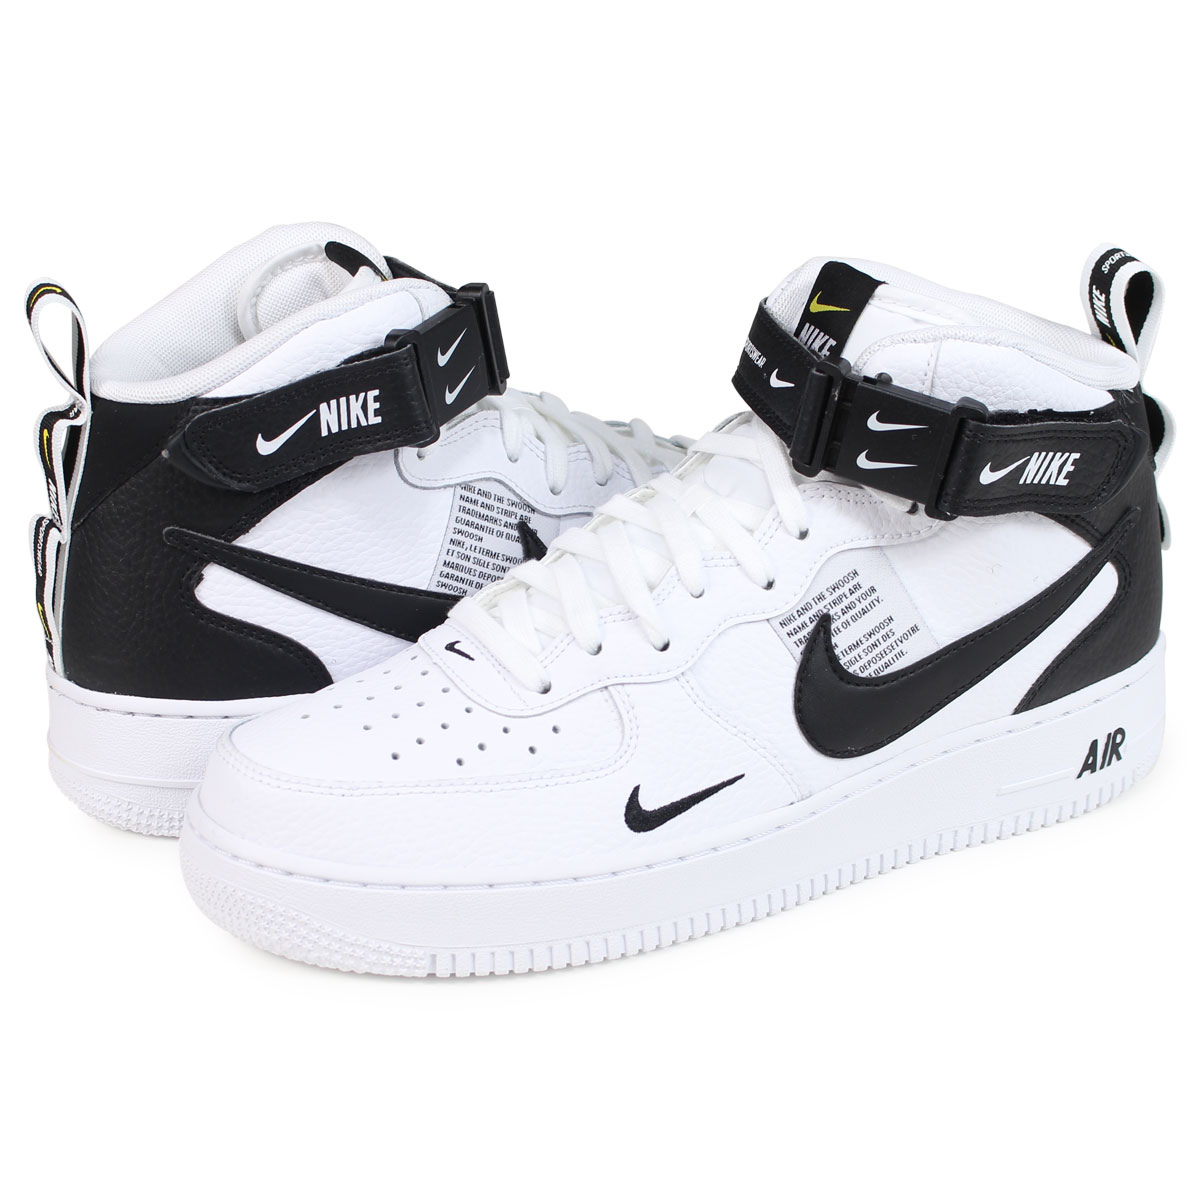 67d7a11c94e ALLSPORTS: Nike NIKE air force 1 sneakers men AIR FORCE 1 MID 07 LV8 ...